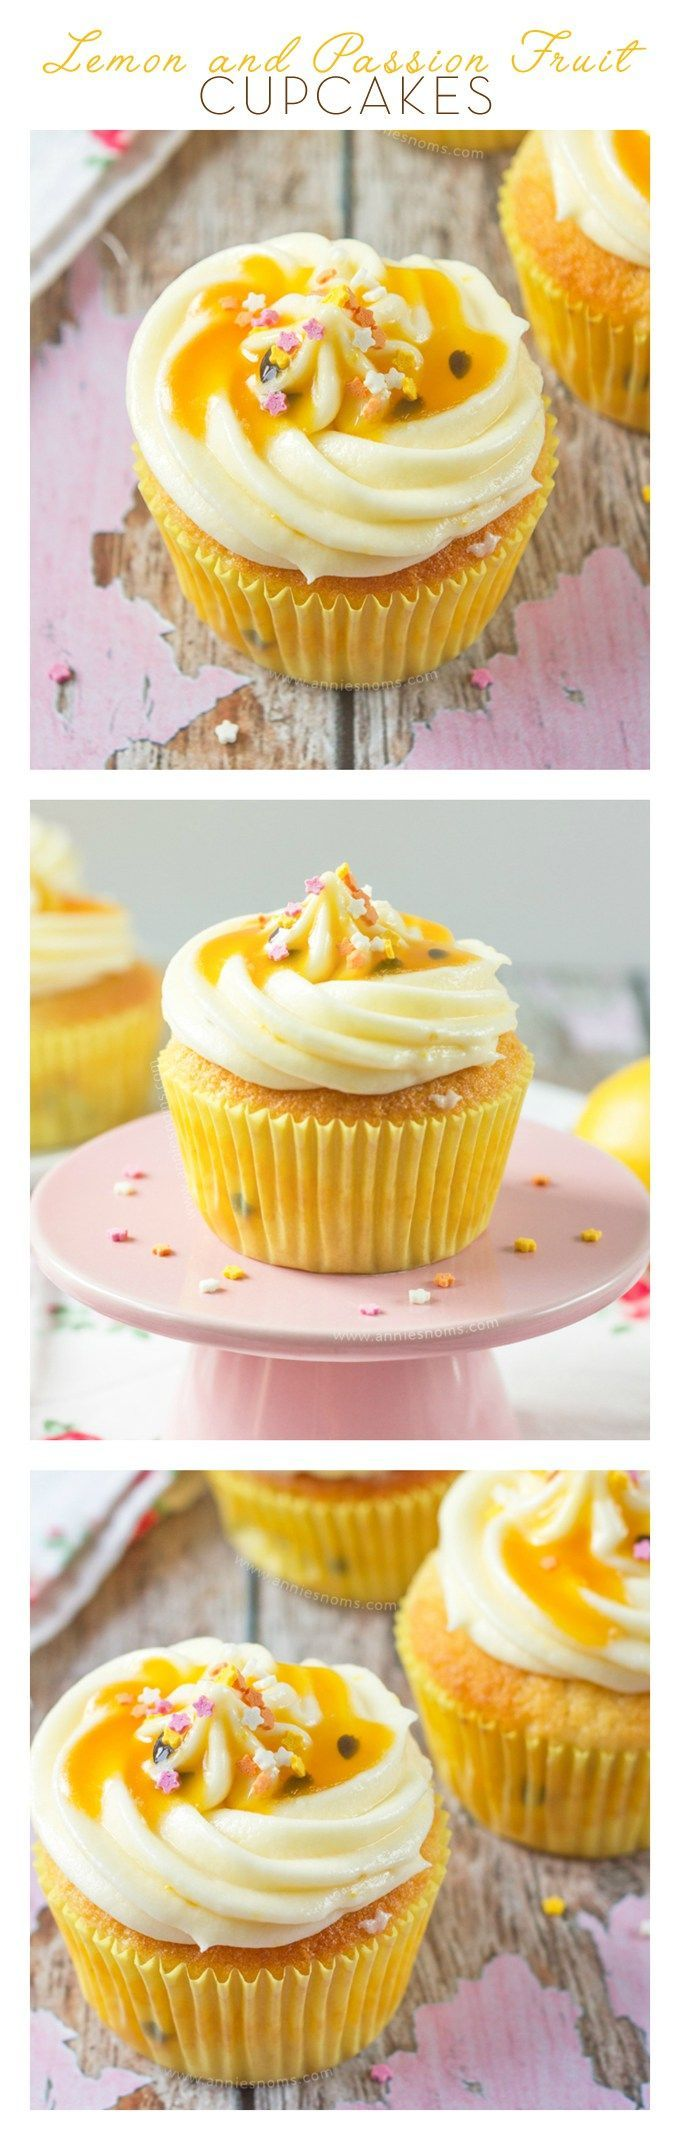 These Lemon and Passion Fruit Cupcakes are light, delicate and pack a real flavour punch. Tender lemon cupcakes, with Passion Fruit Coulis inside the cake and on top of the frosting - these are the perfect cupcakes to welcome Spring!